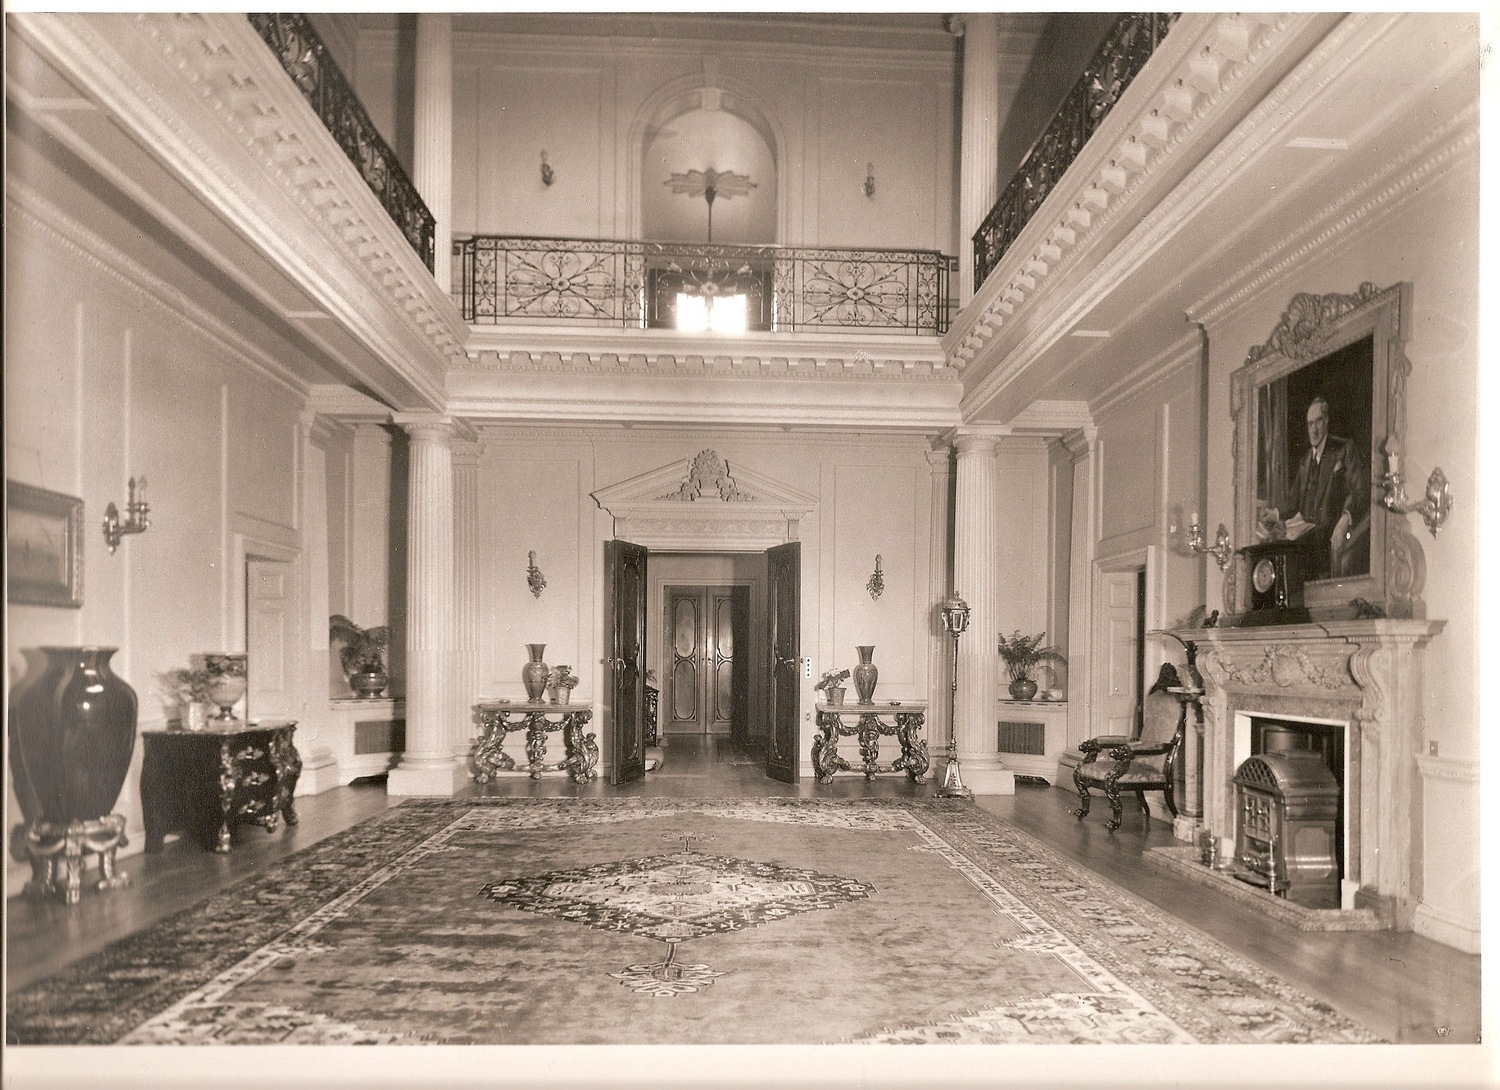 HISTORY OF HEDSOR HOUSE